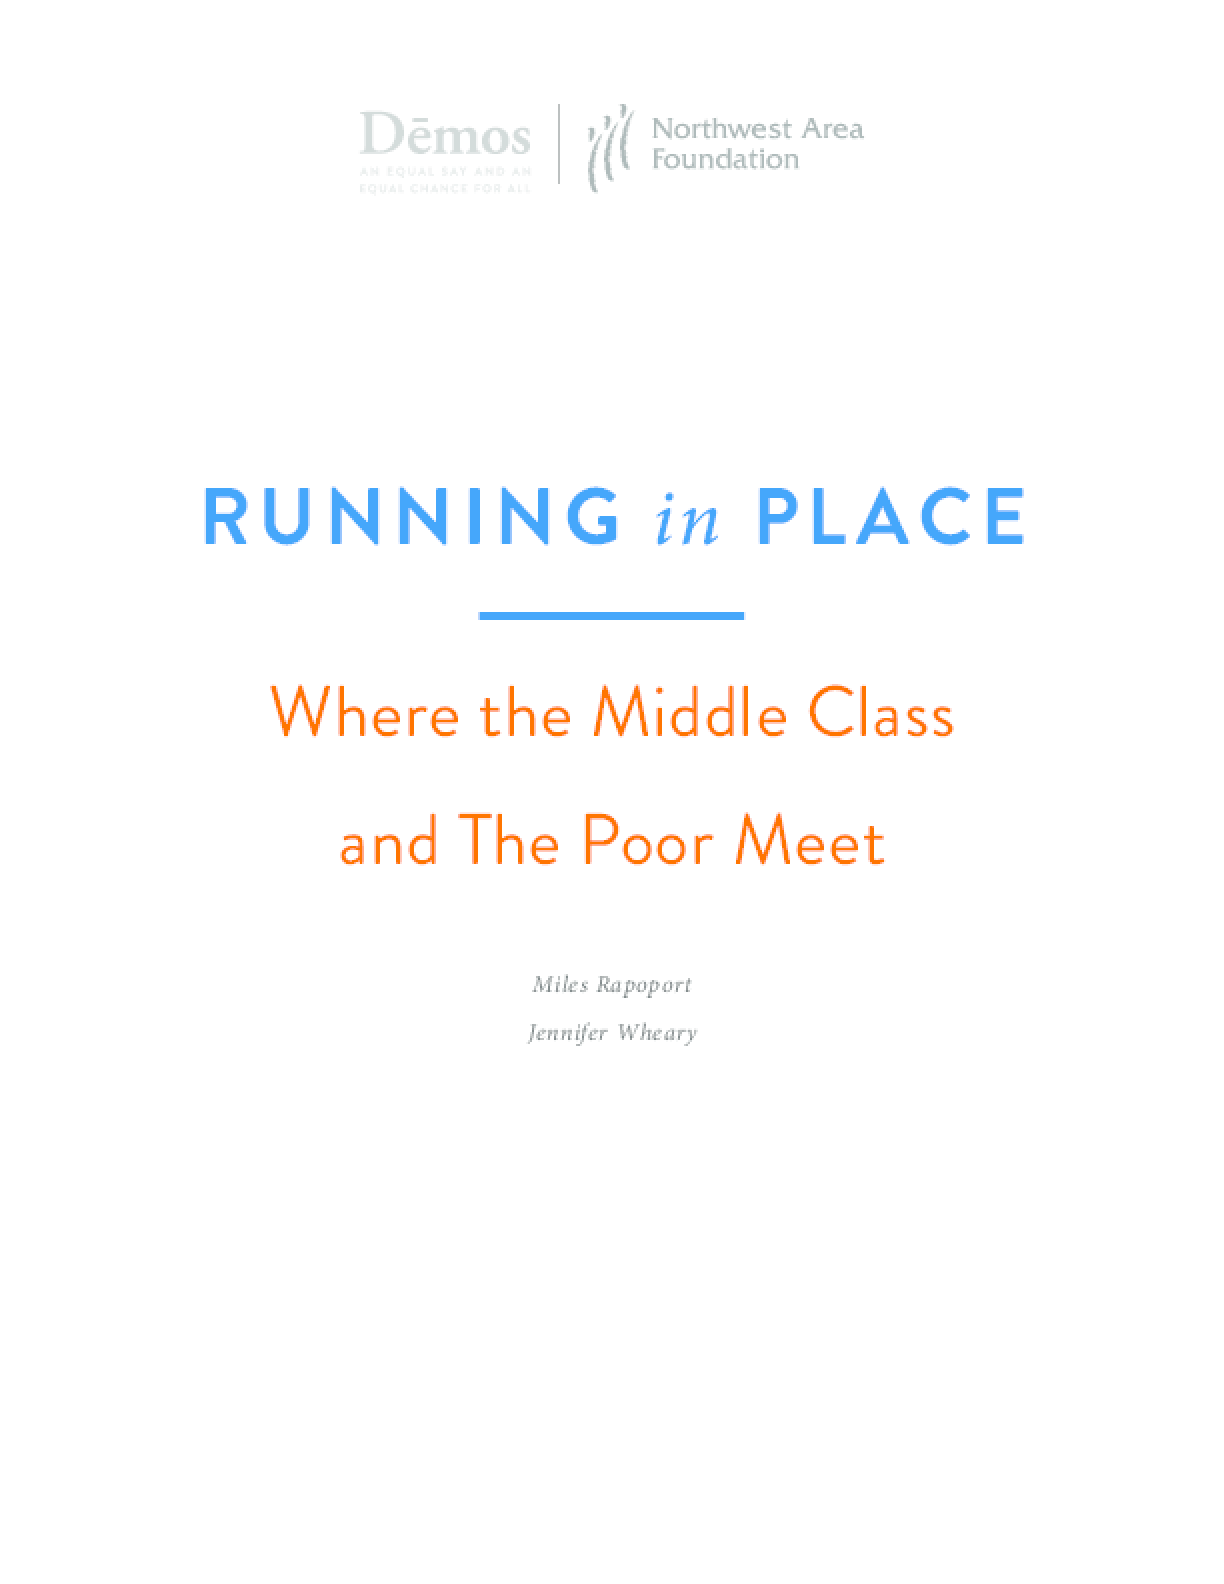 Running in Place: Where the Middle Class and the Poor Meet